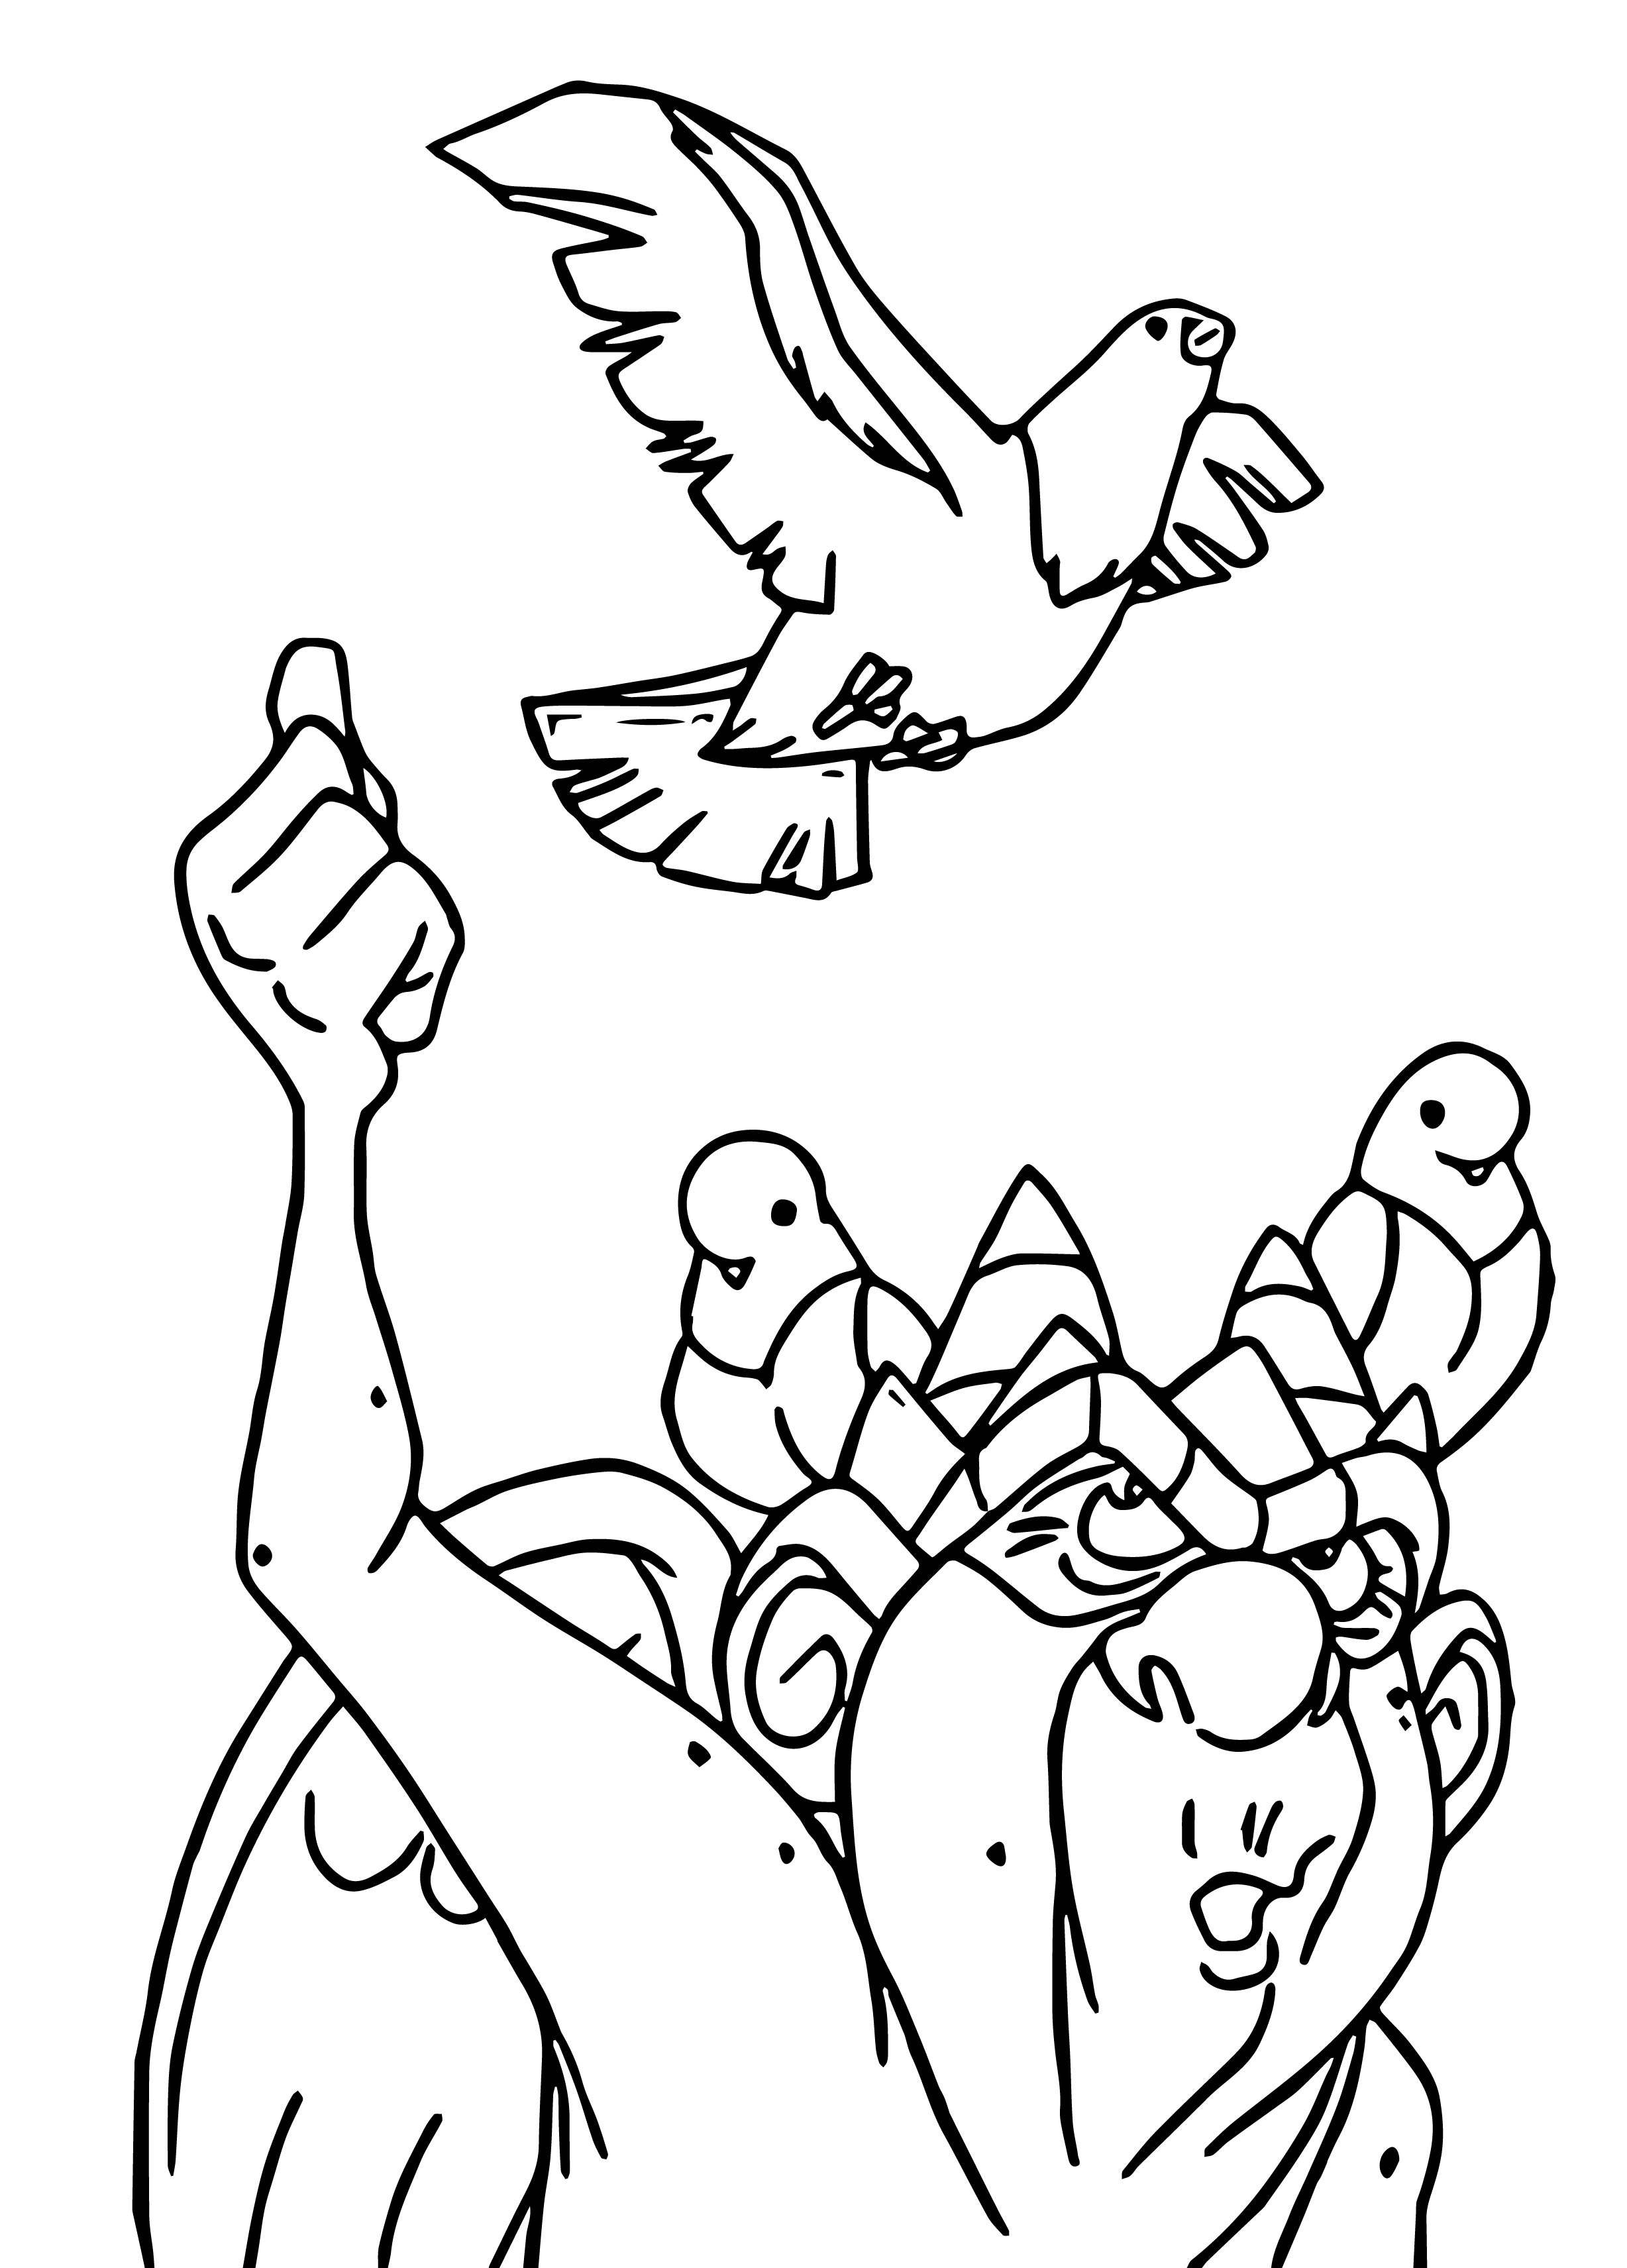 The Hunchback Of Notre Dame Labirds Cartoon Coloring Pages